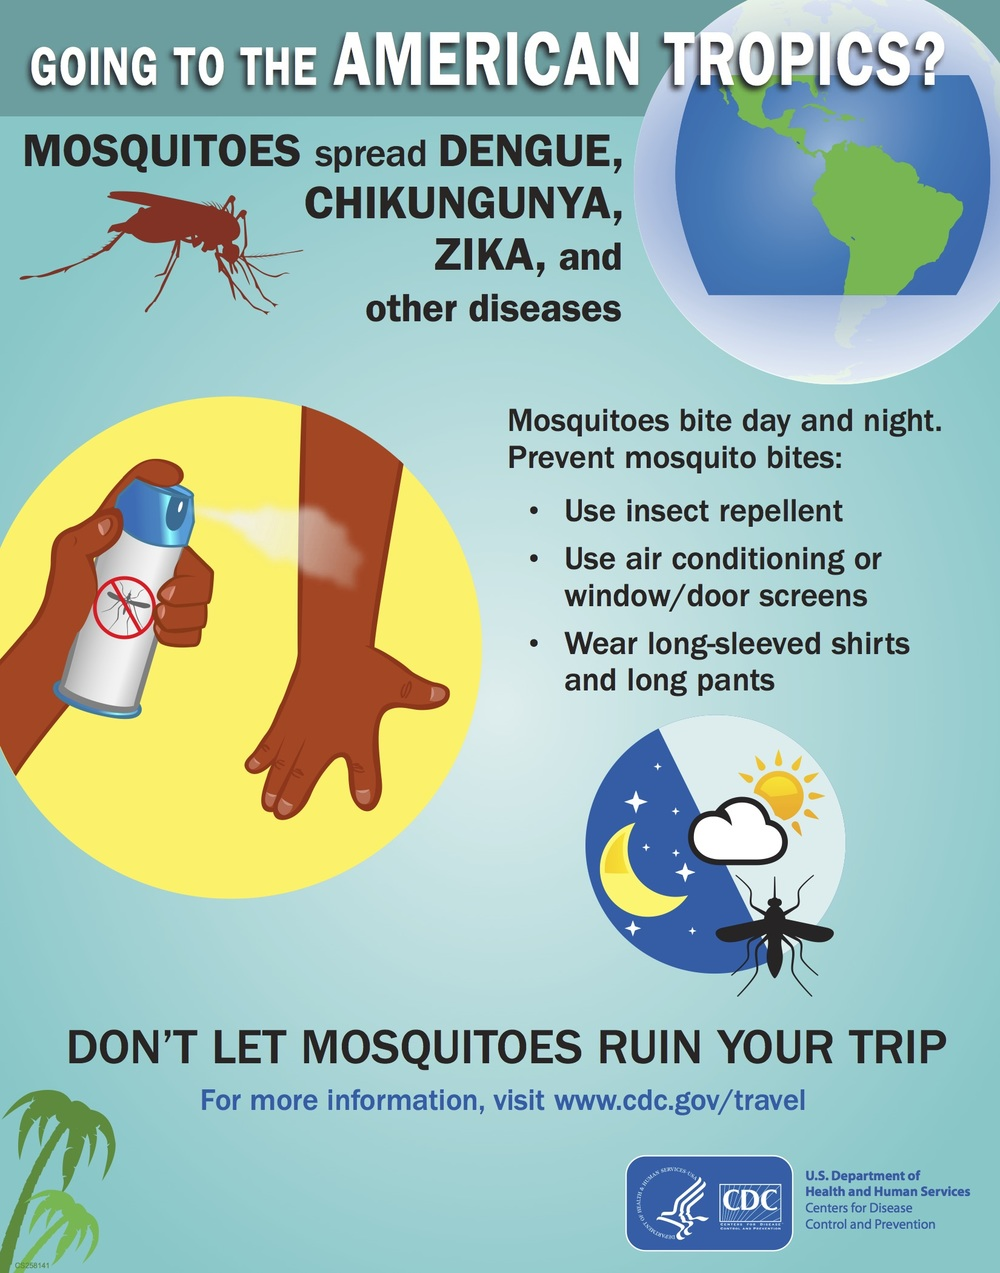 Image Source: CDC.gov